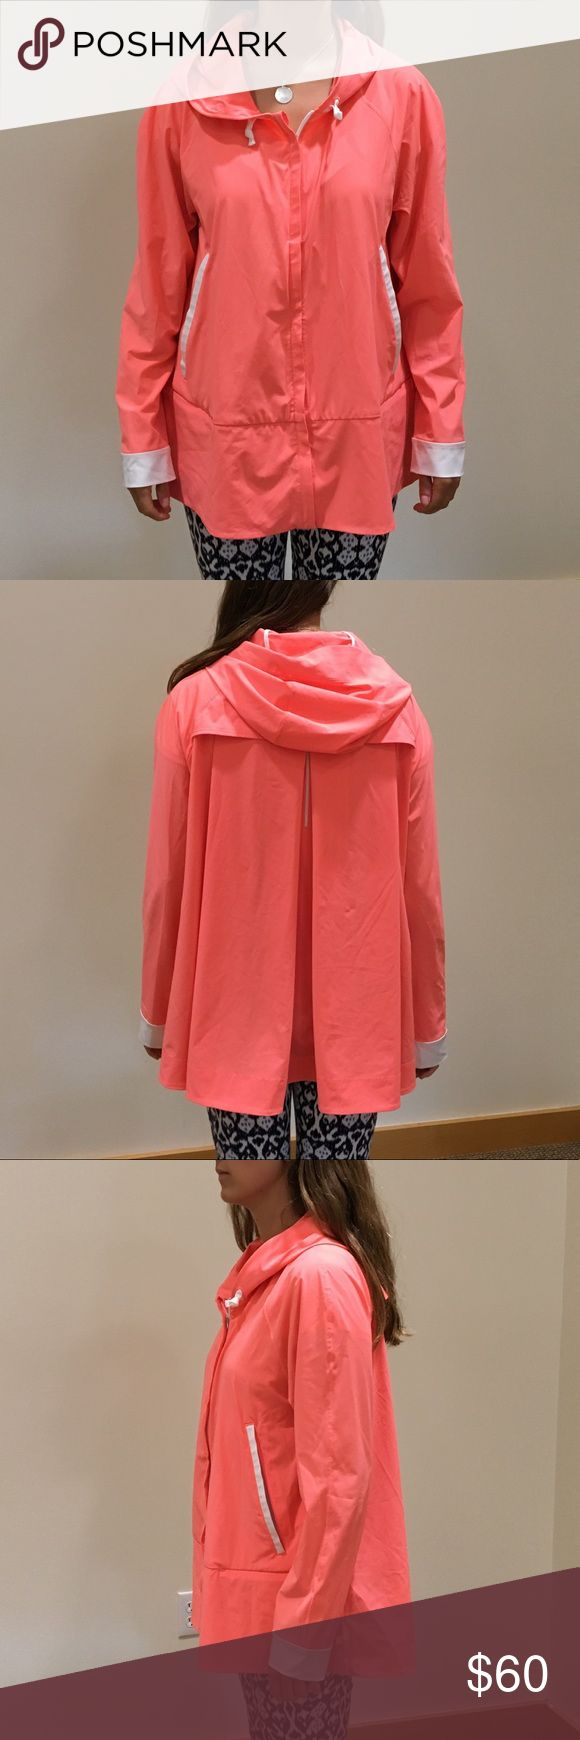 Lulu Lemon Women's Pink Zip Up Hoodie Jacket 10 This fun jacket is lightweight and comfortable. It's stretchy and almost feels like a light rain jacket material. It fits sort of like a poncho in the back and has a zip closure and hood. There is mesh in the upper back (pictured) and hand pockets. It is in awesome condition aside from two tiny black marks on the back (pictured) that aren't really noticeable when wearing. Perfect for covering up before and after a workout, or even during…